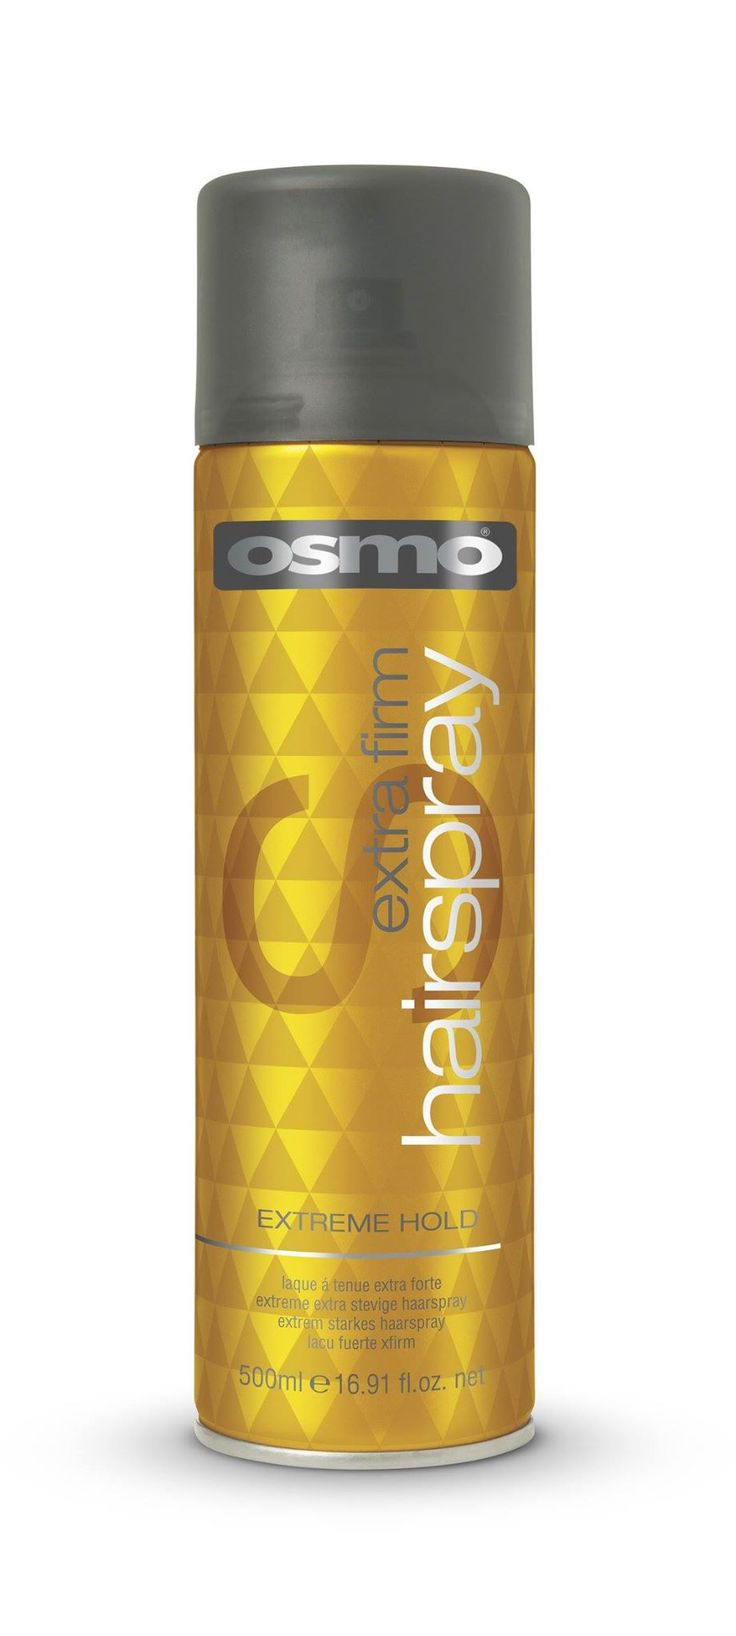 Osmo Extreme Extra Firm Hairspray 500ml.